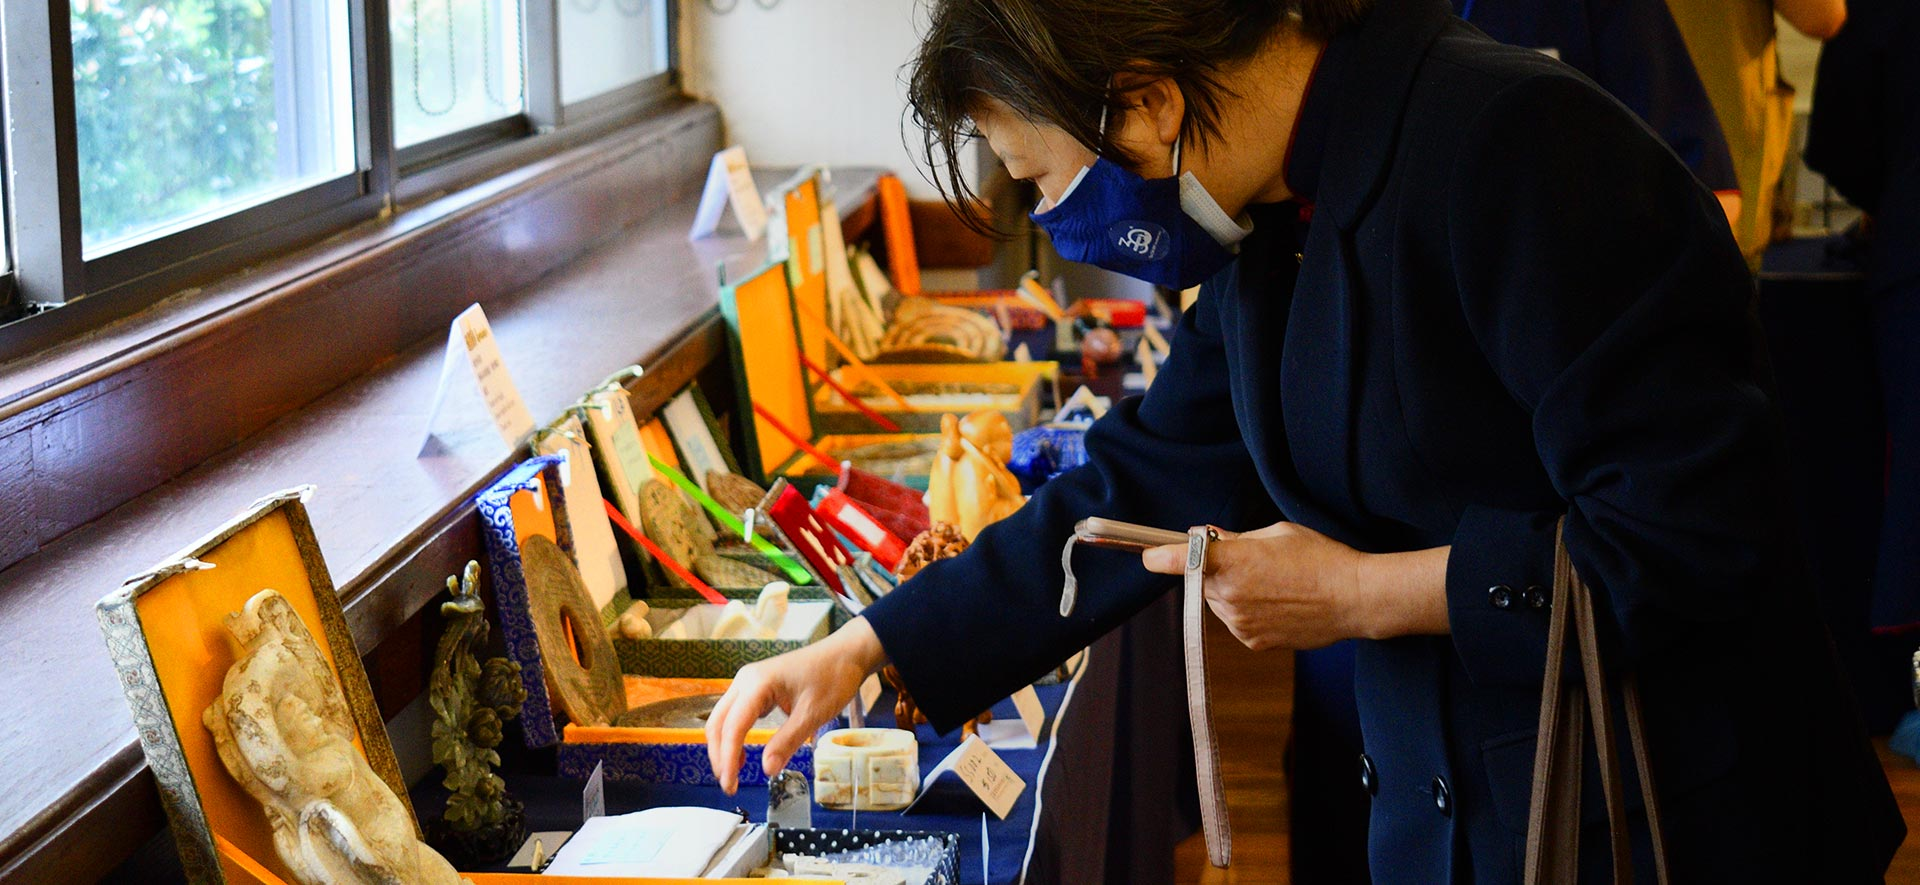 Bidding for Good: Tzu Chi NY Hosts a Charity Art Auction